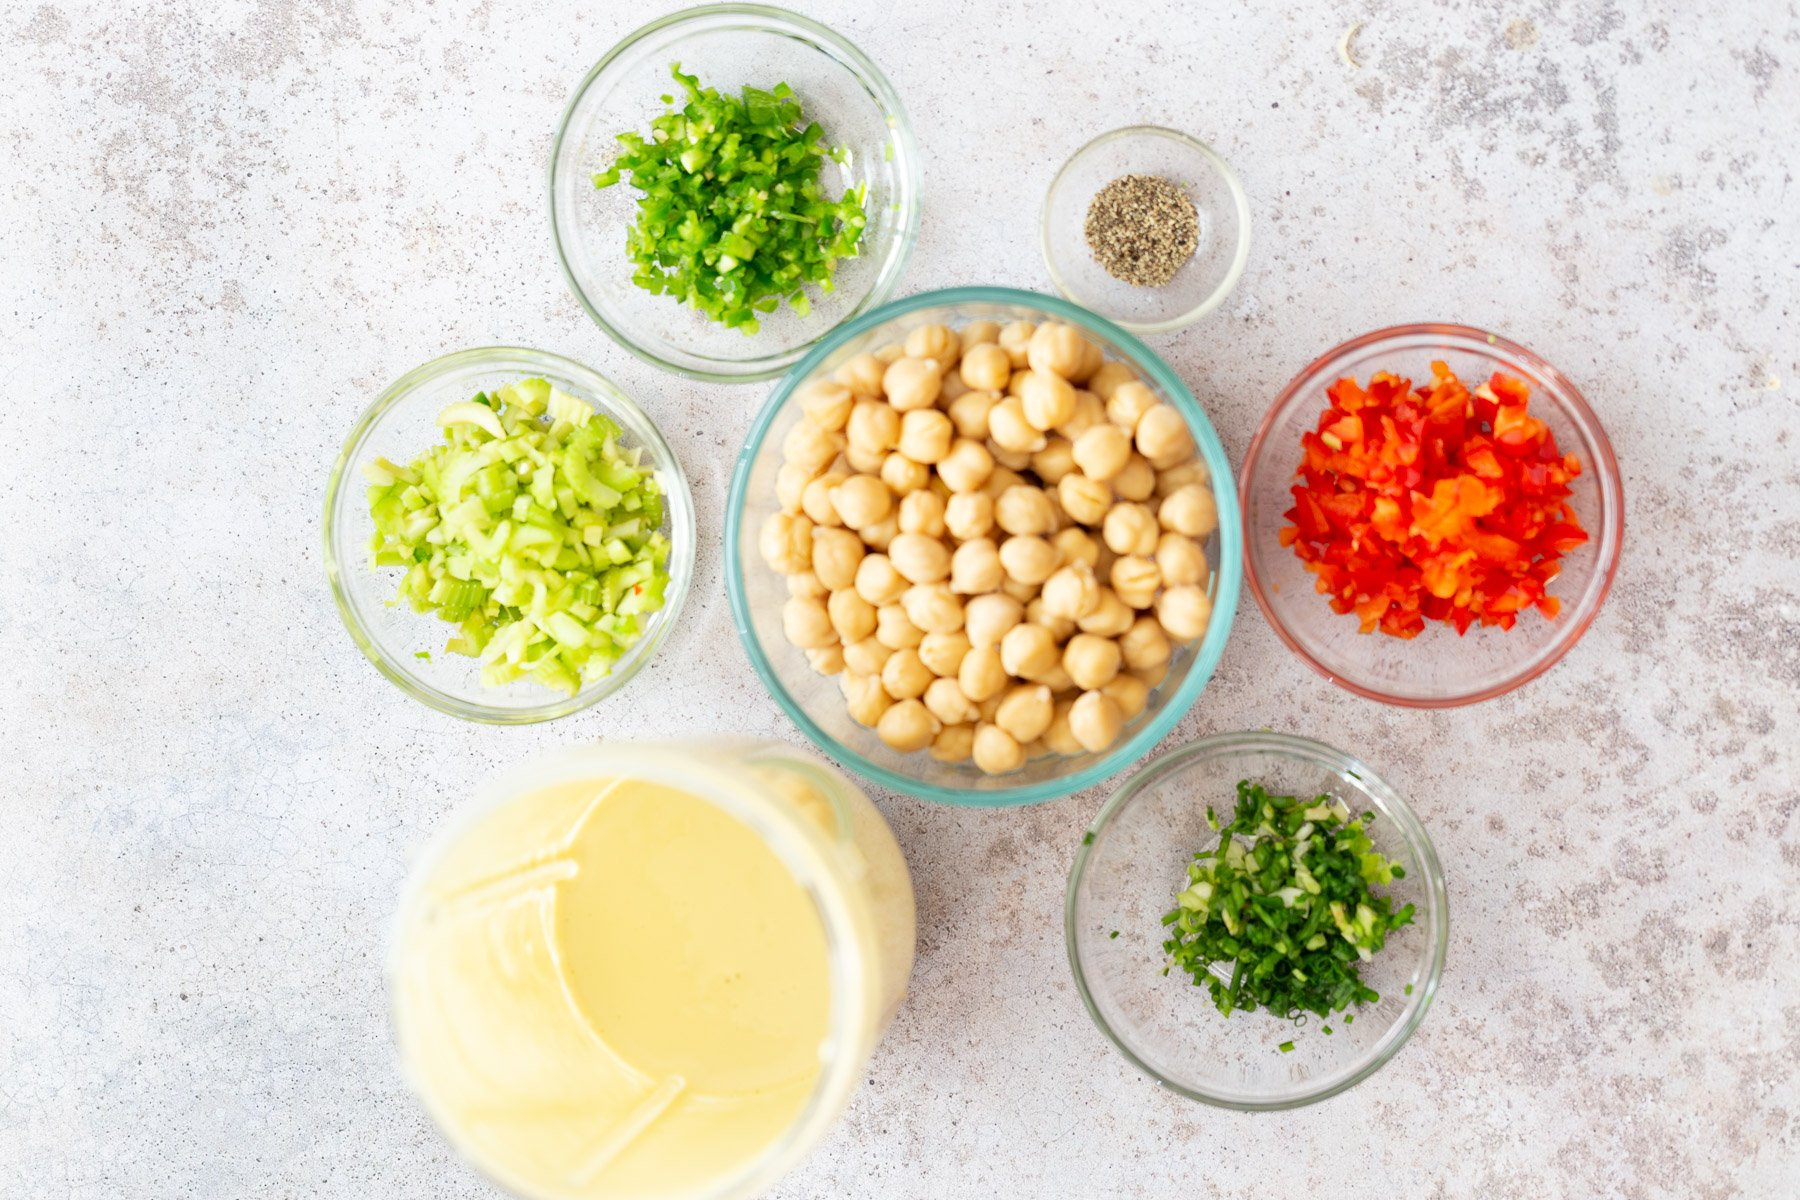 overhead shot of ingredients needed for making vegan chickpea salad